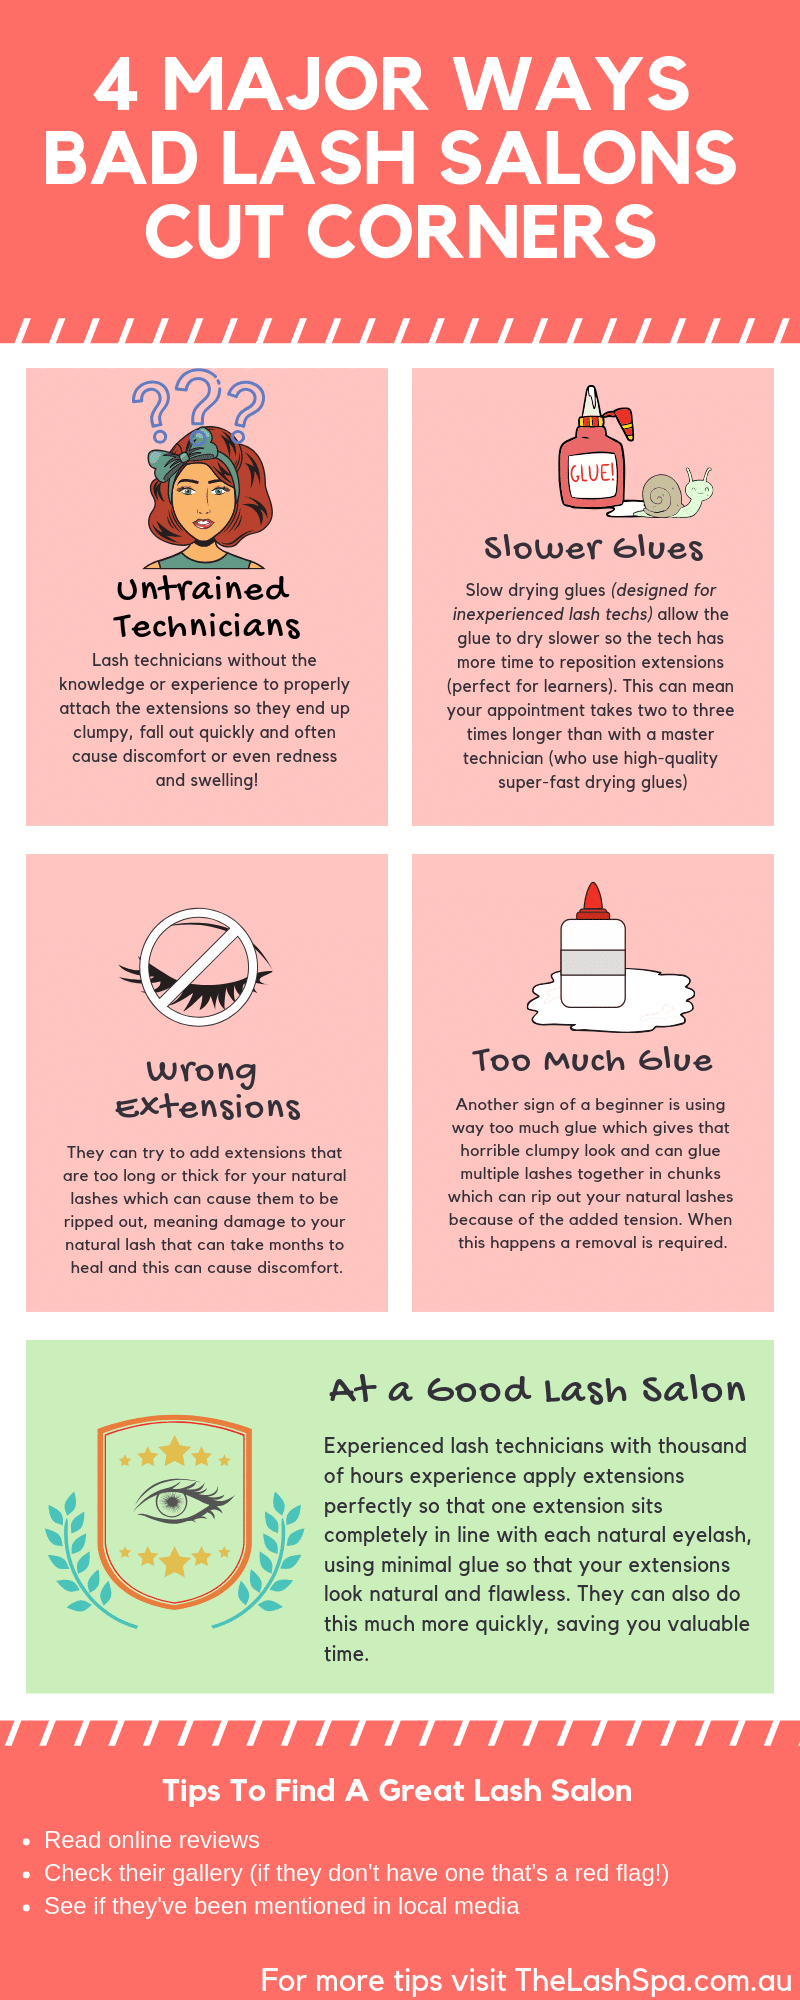 4-Problems-Bad-Lash-Salons-Cause-infographic-plaza